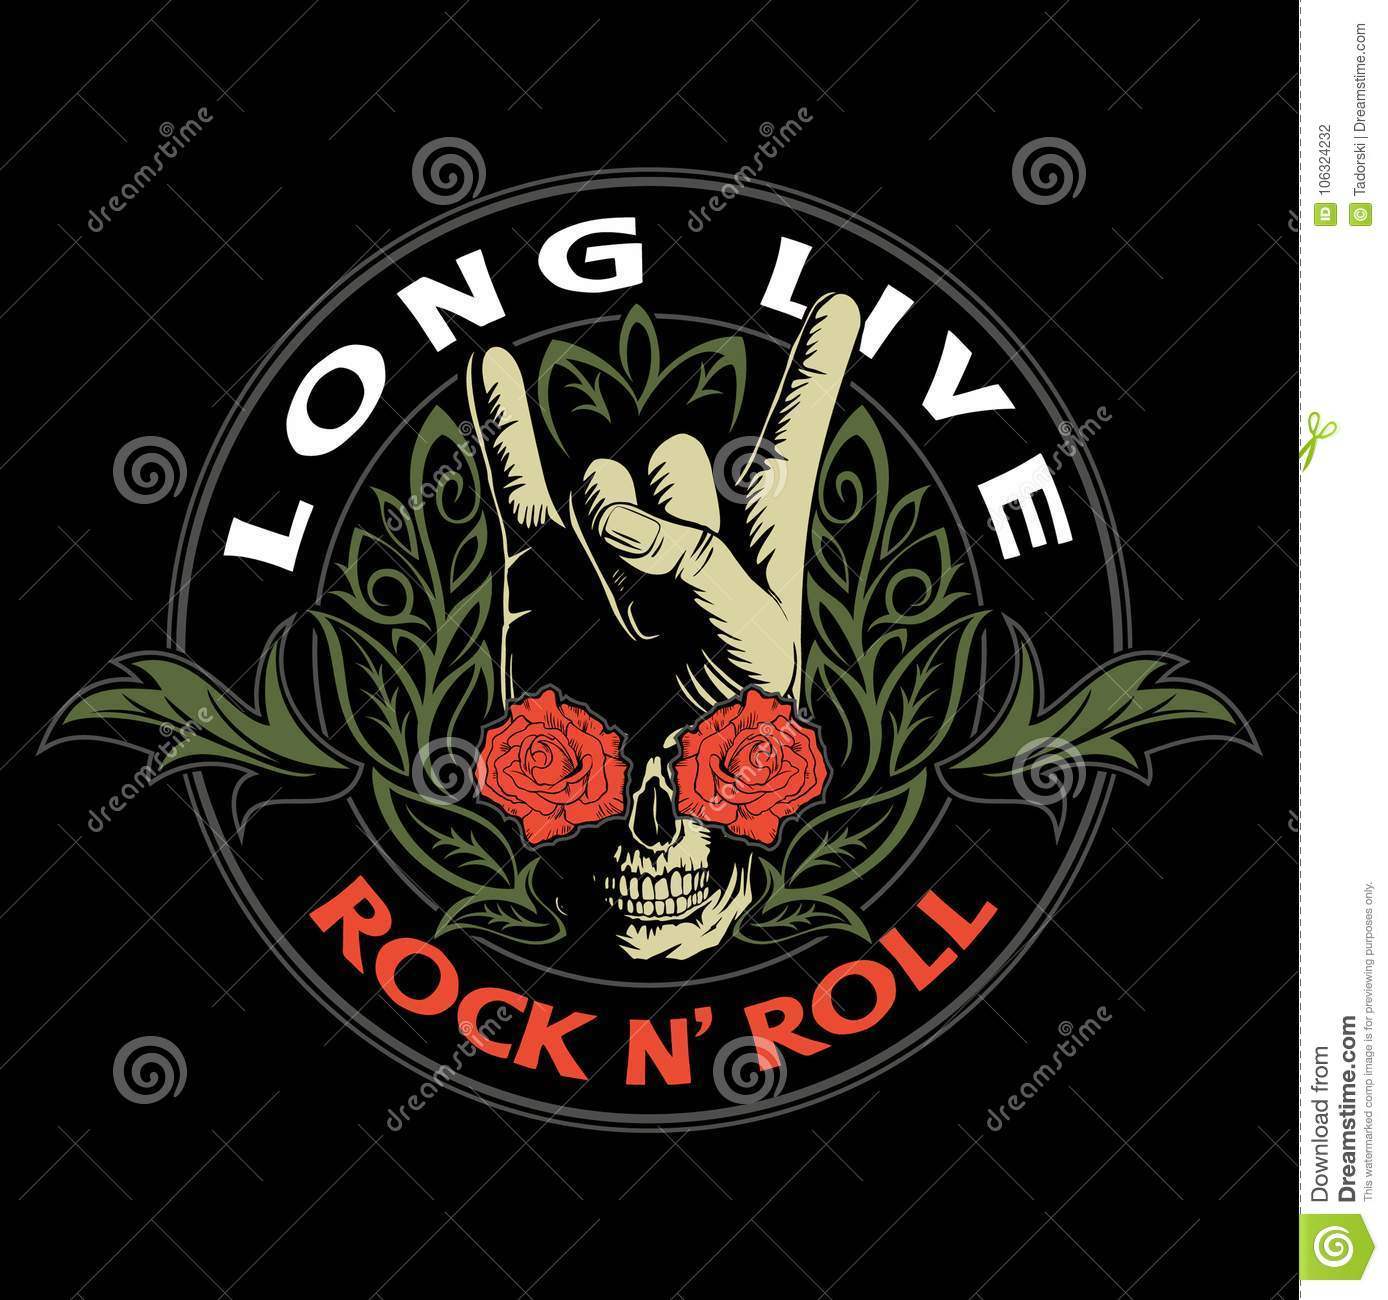 On Heavy Metal Hard Rock Heavy Metal Sign Of The Horns Rock Sign Hand With The